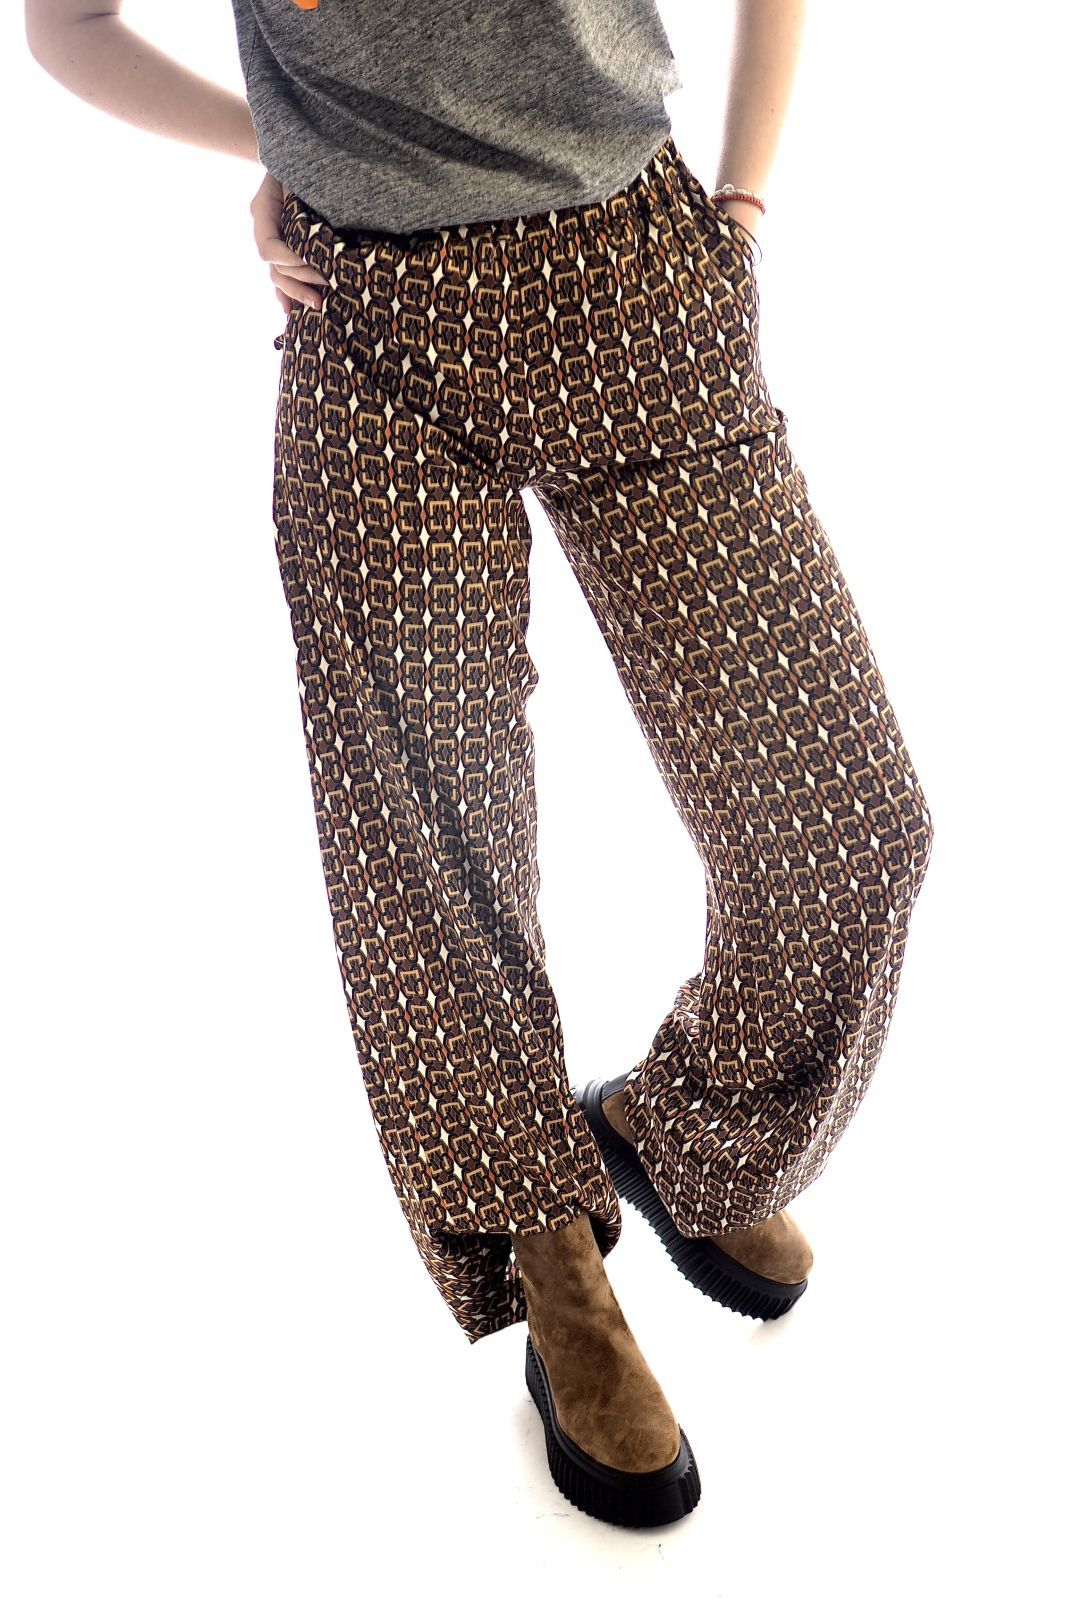 Jeff pantalon Multicolor femmes (Jeff-Pantalon imprimé - SIMON Pantalon imprimé brun/or) - Marine | Much more than shoes